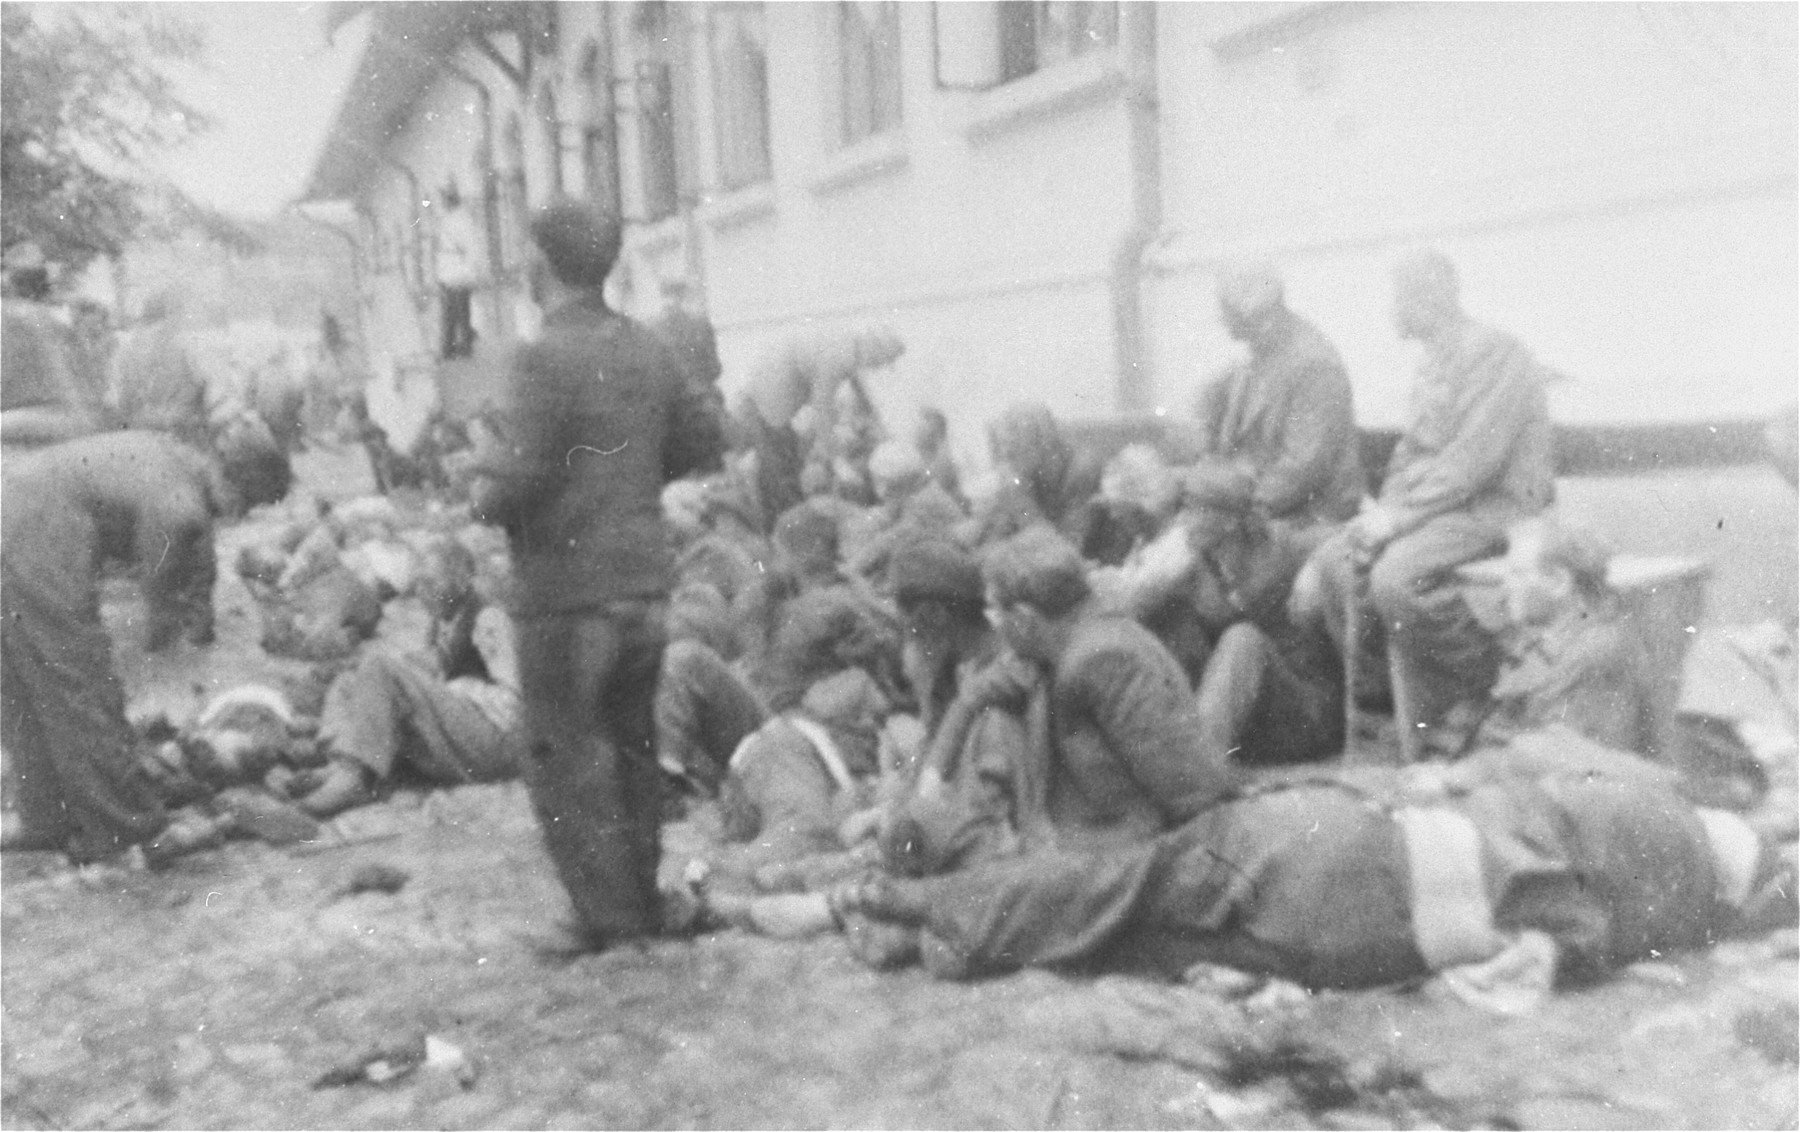 Jews assemble in the courtyard of police headquarters during the Iasi pogrom.